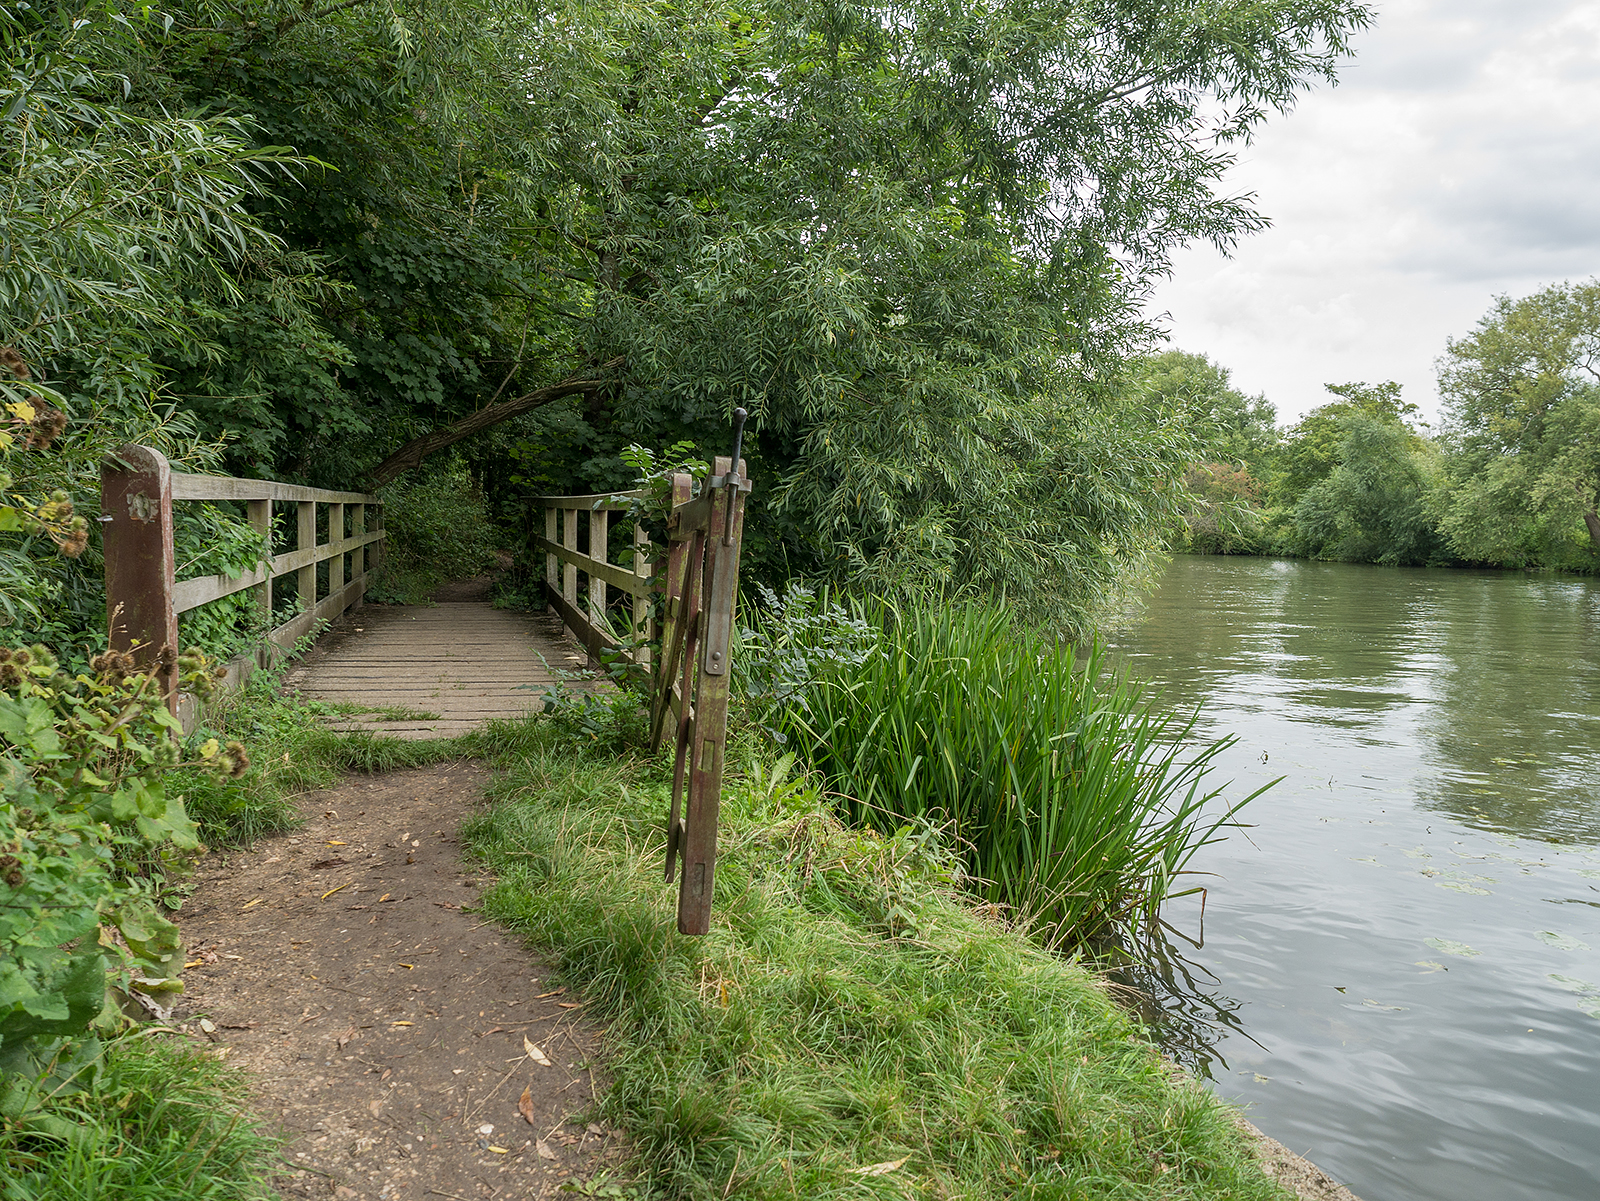 Another small footbridge